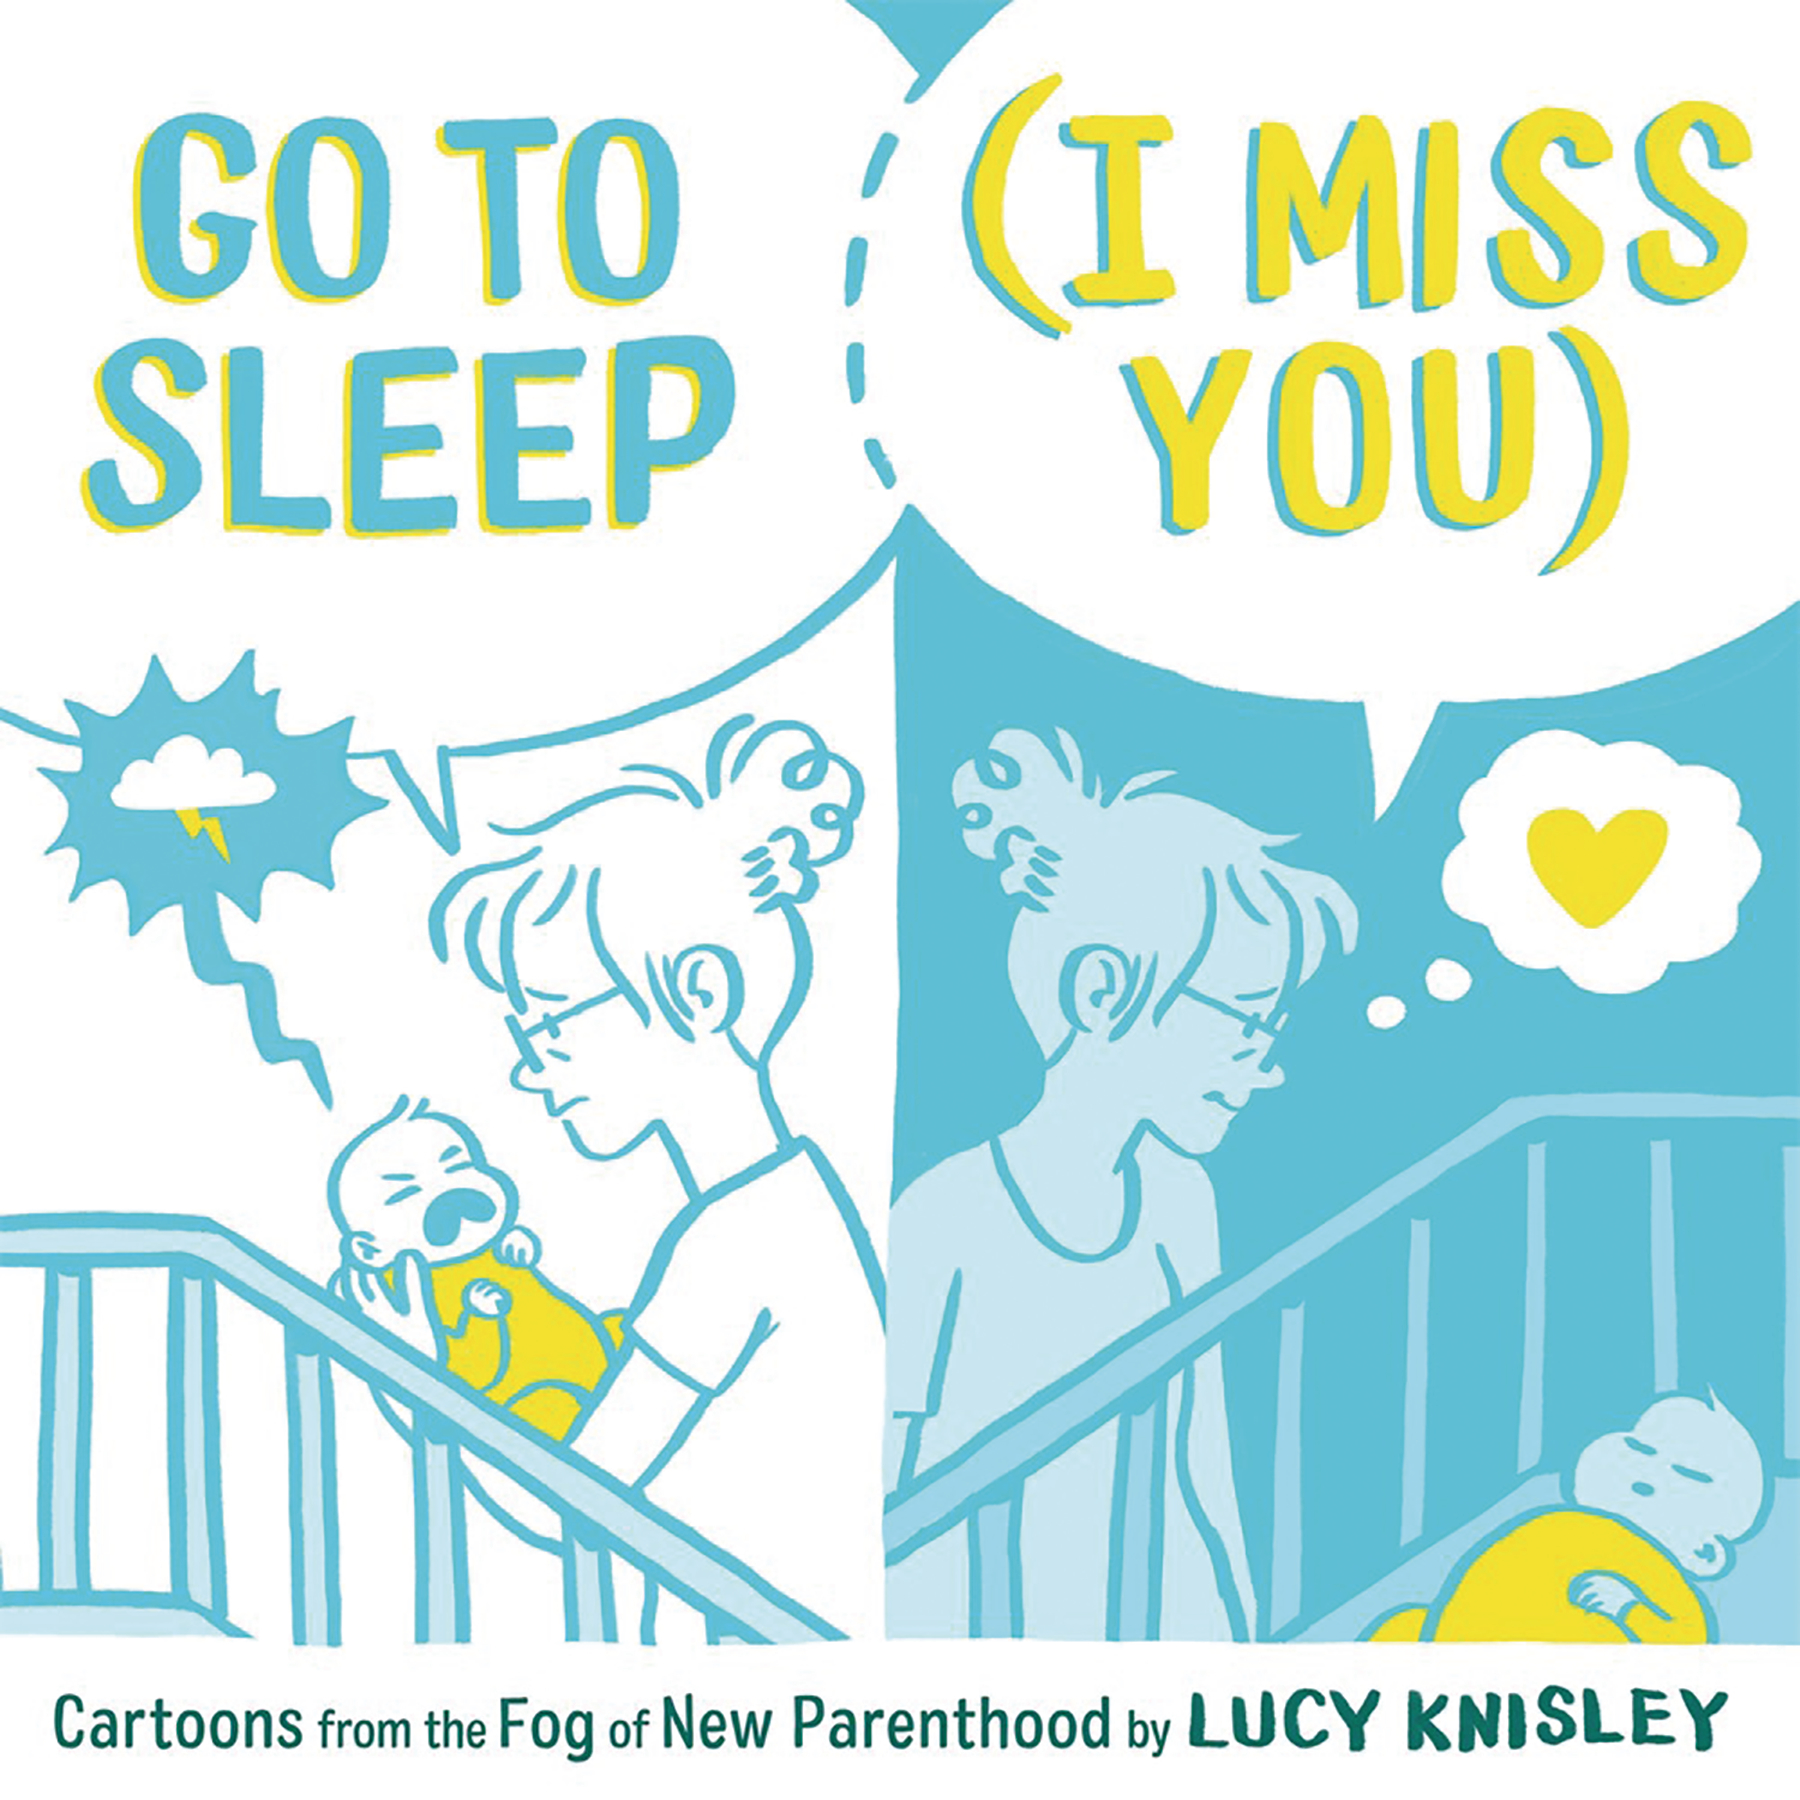 GO TO SLEEP I MISS YOU CARTOONS FROM FOG NEW PARENTHOOD